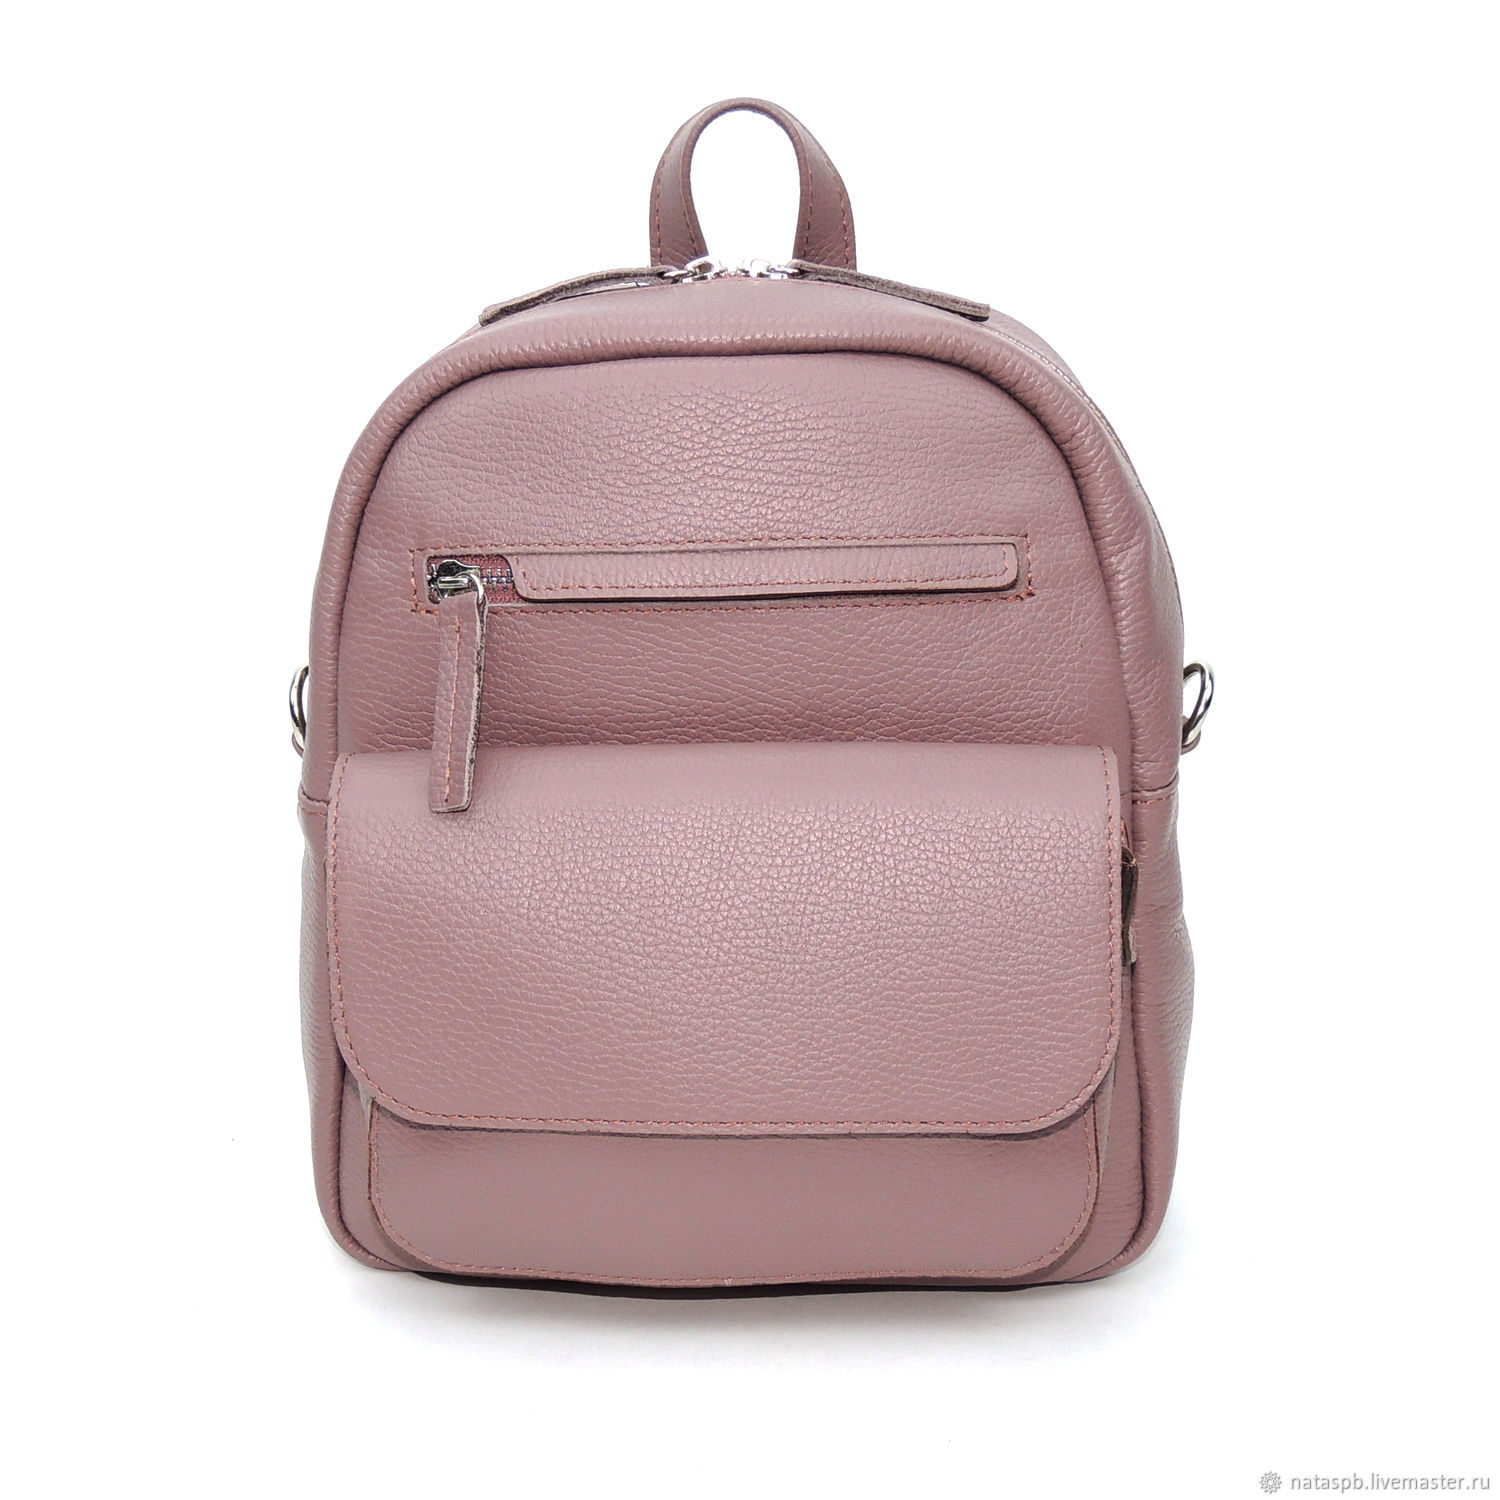 Backpack leather ladies purple Tristan – shop online on Livemaster ... 231c61705402f